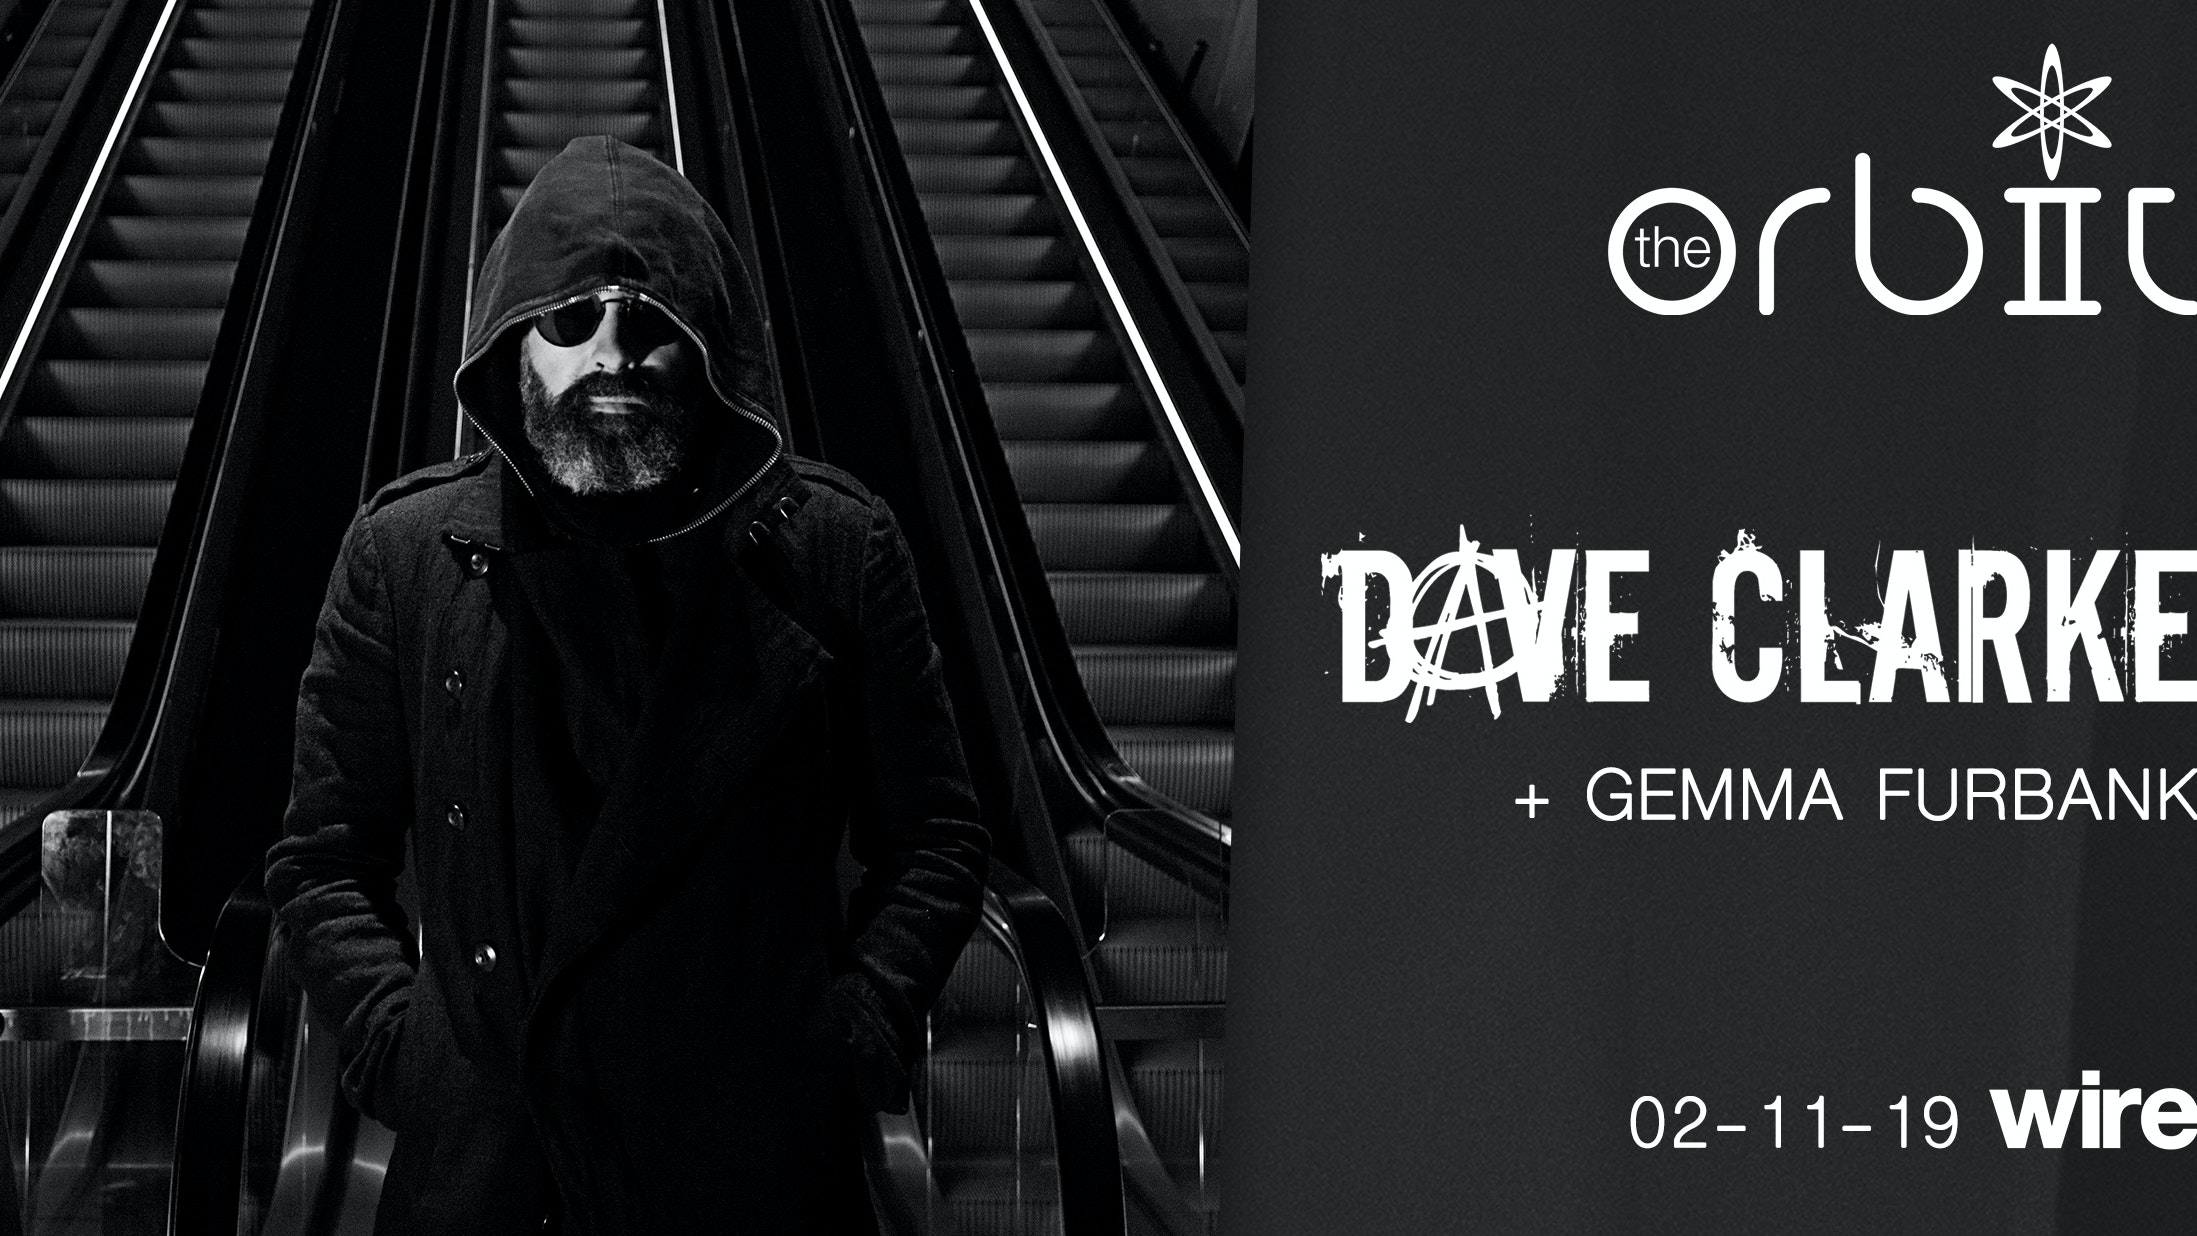 Dave Clarke (Leeds) – The Orbit